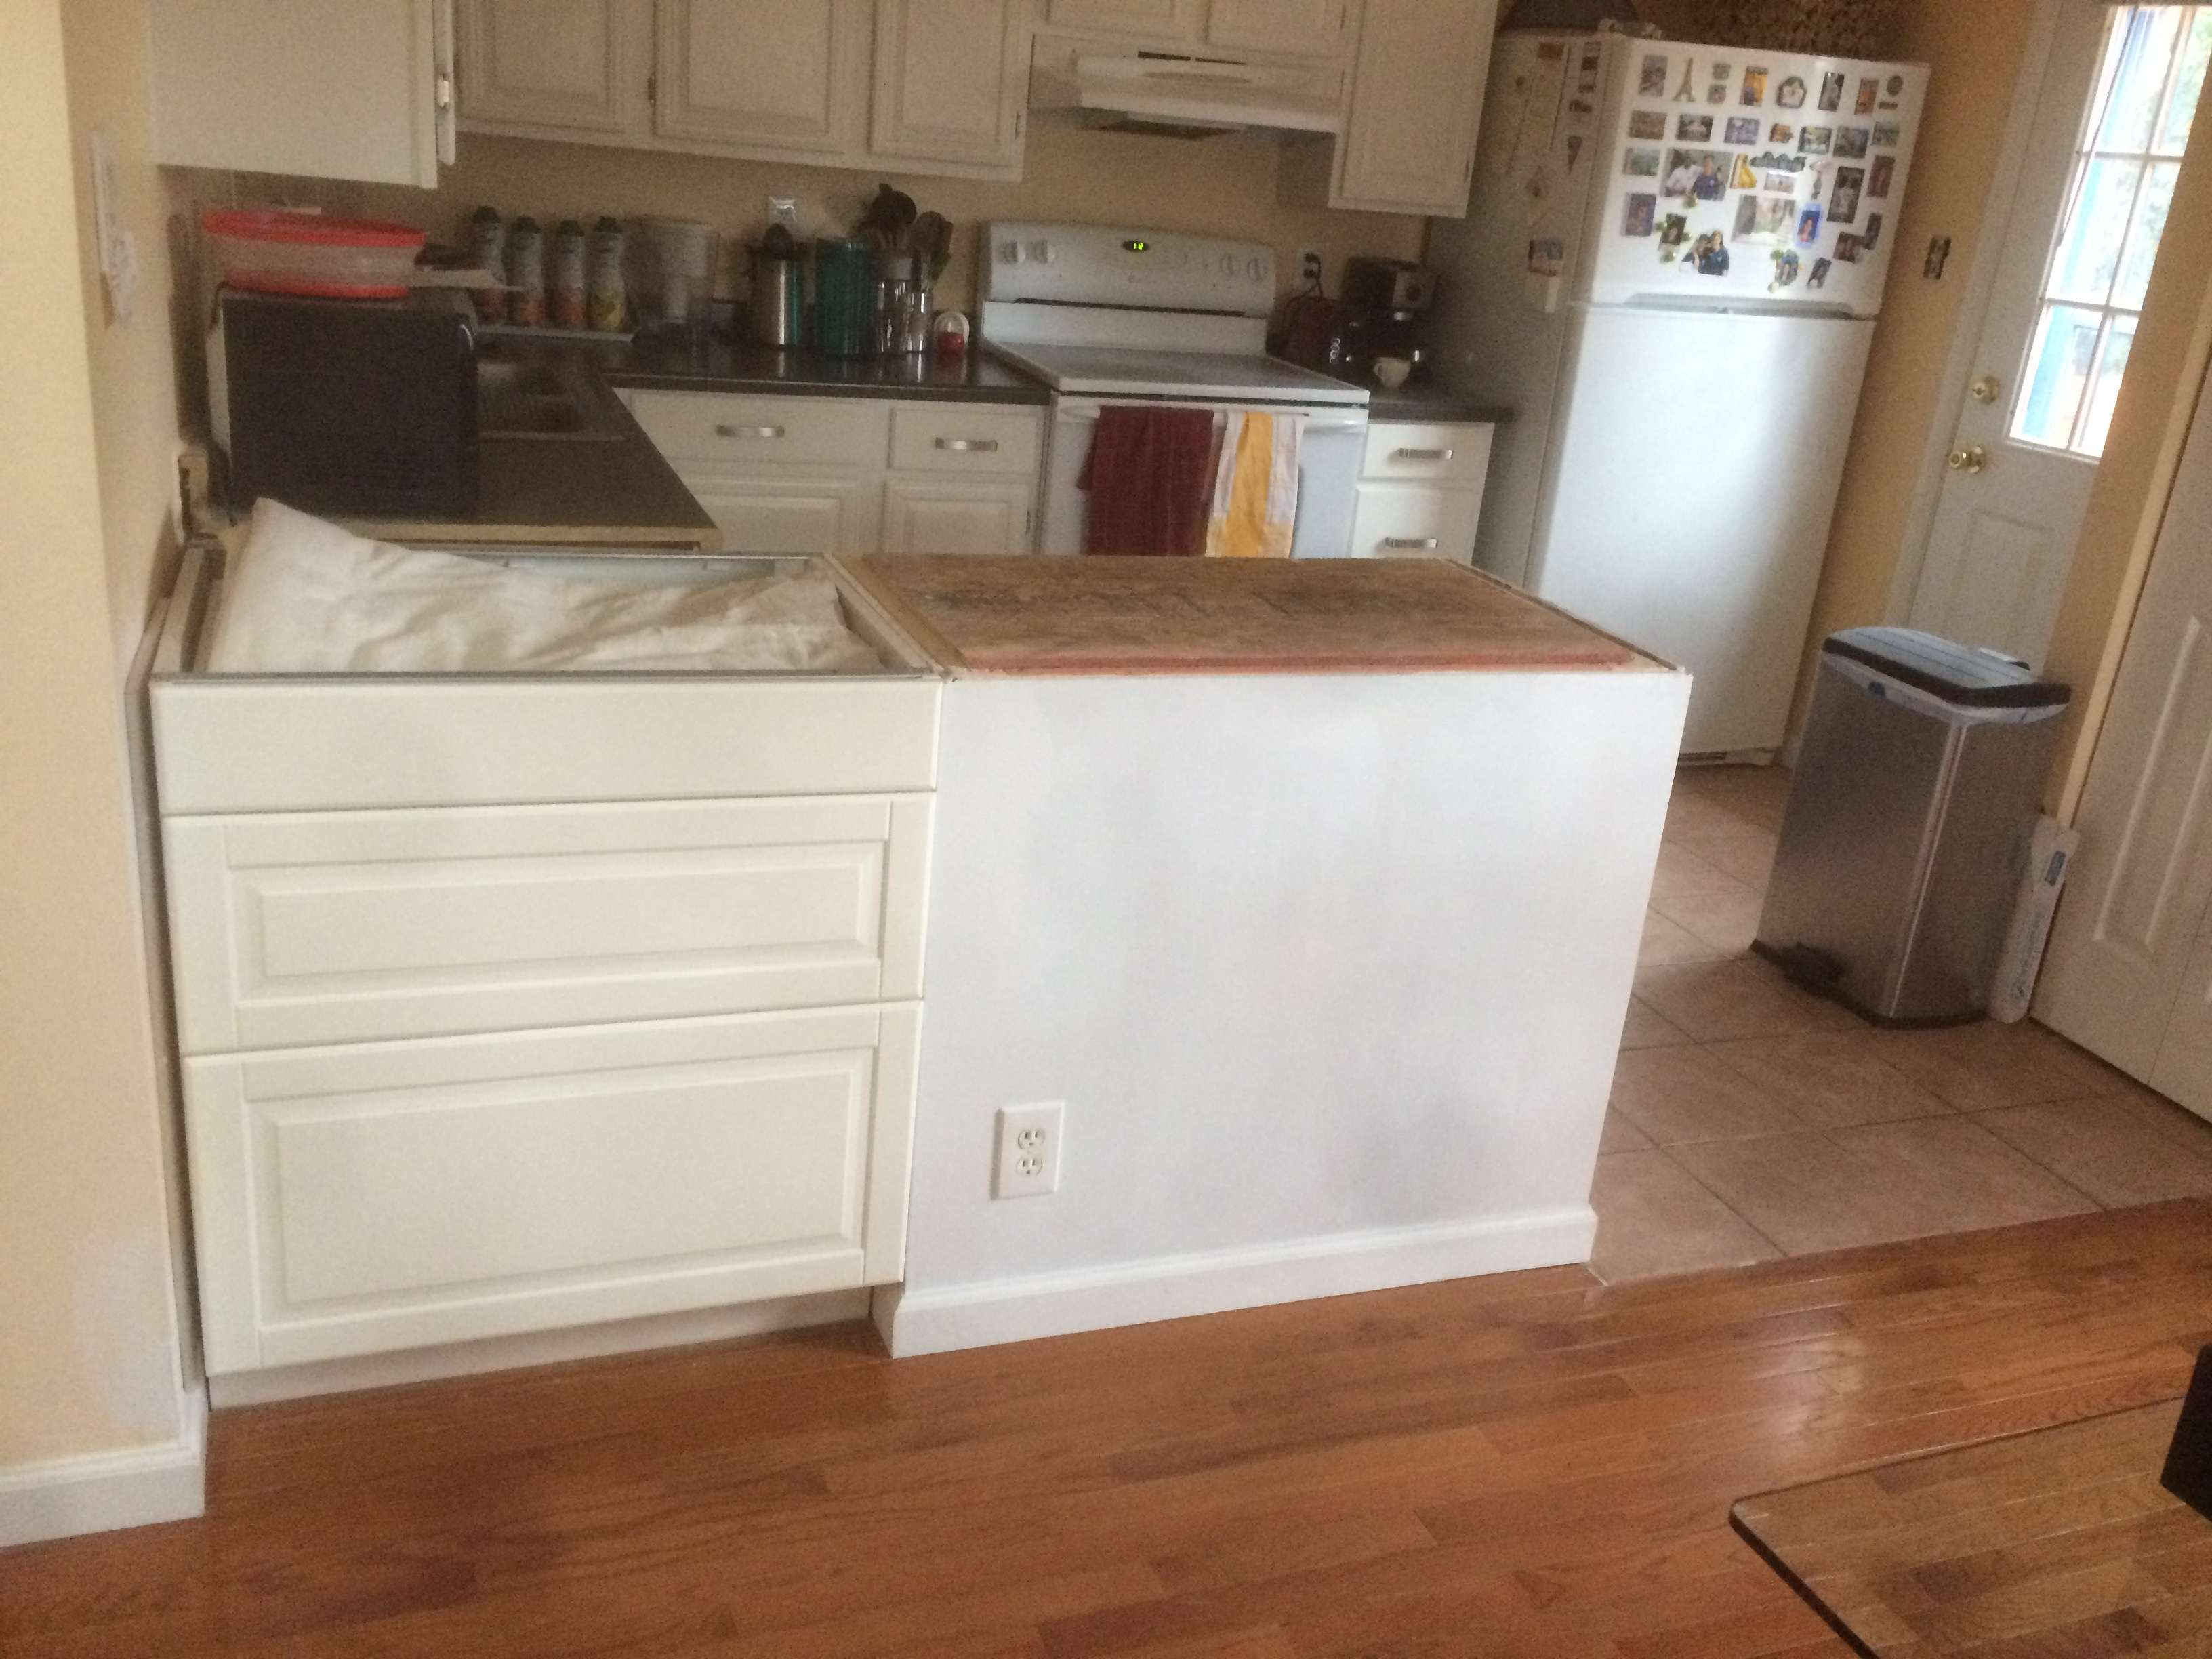 Falls Church kitchen reno 2